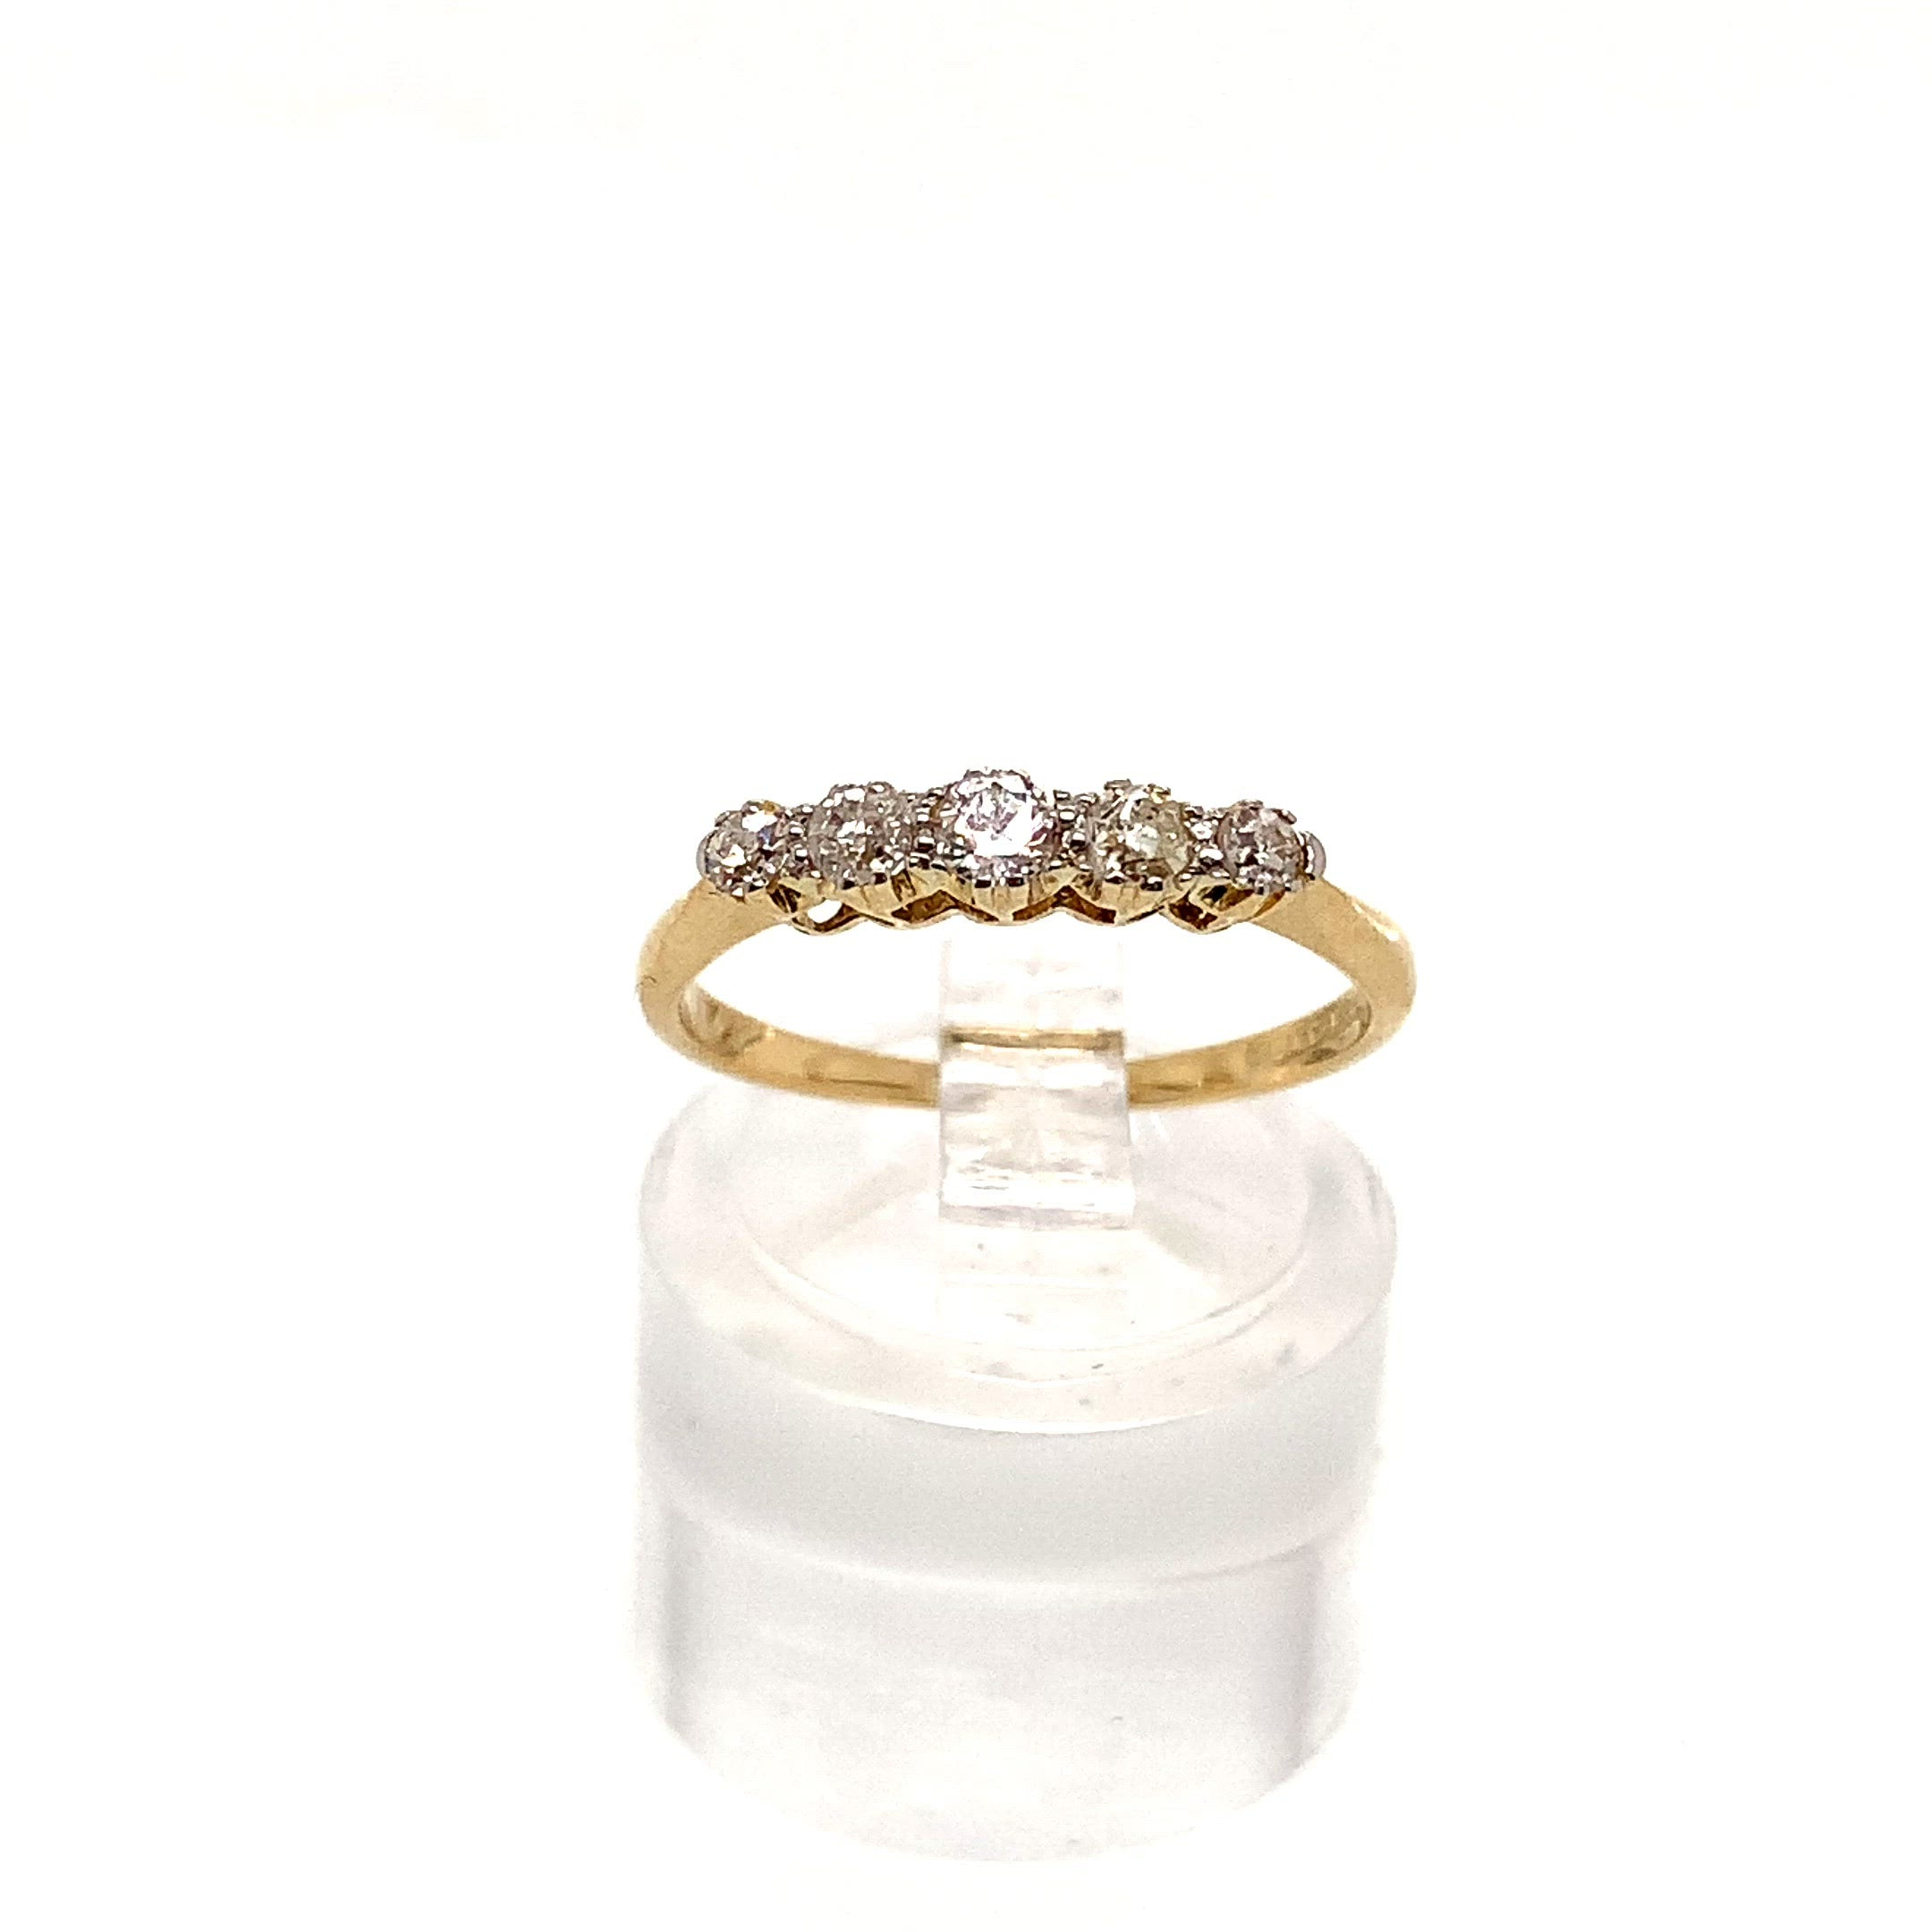 18ct Yellow Gold Graduated 5 Stone Old Cut Diamond Ring with Platinum Head